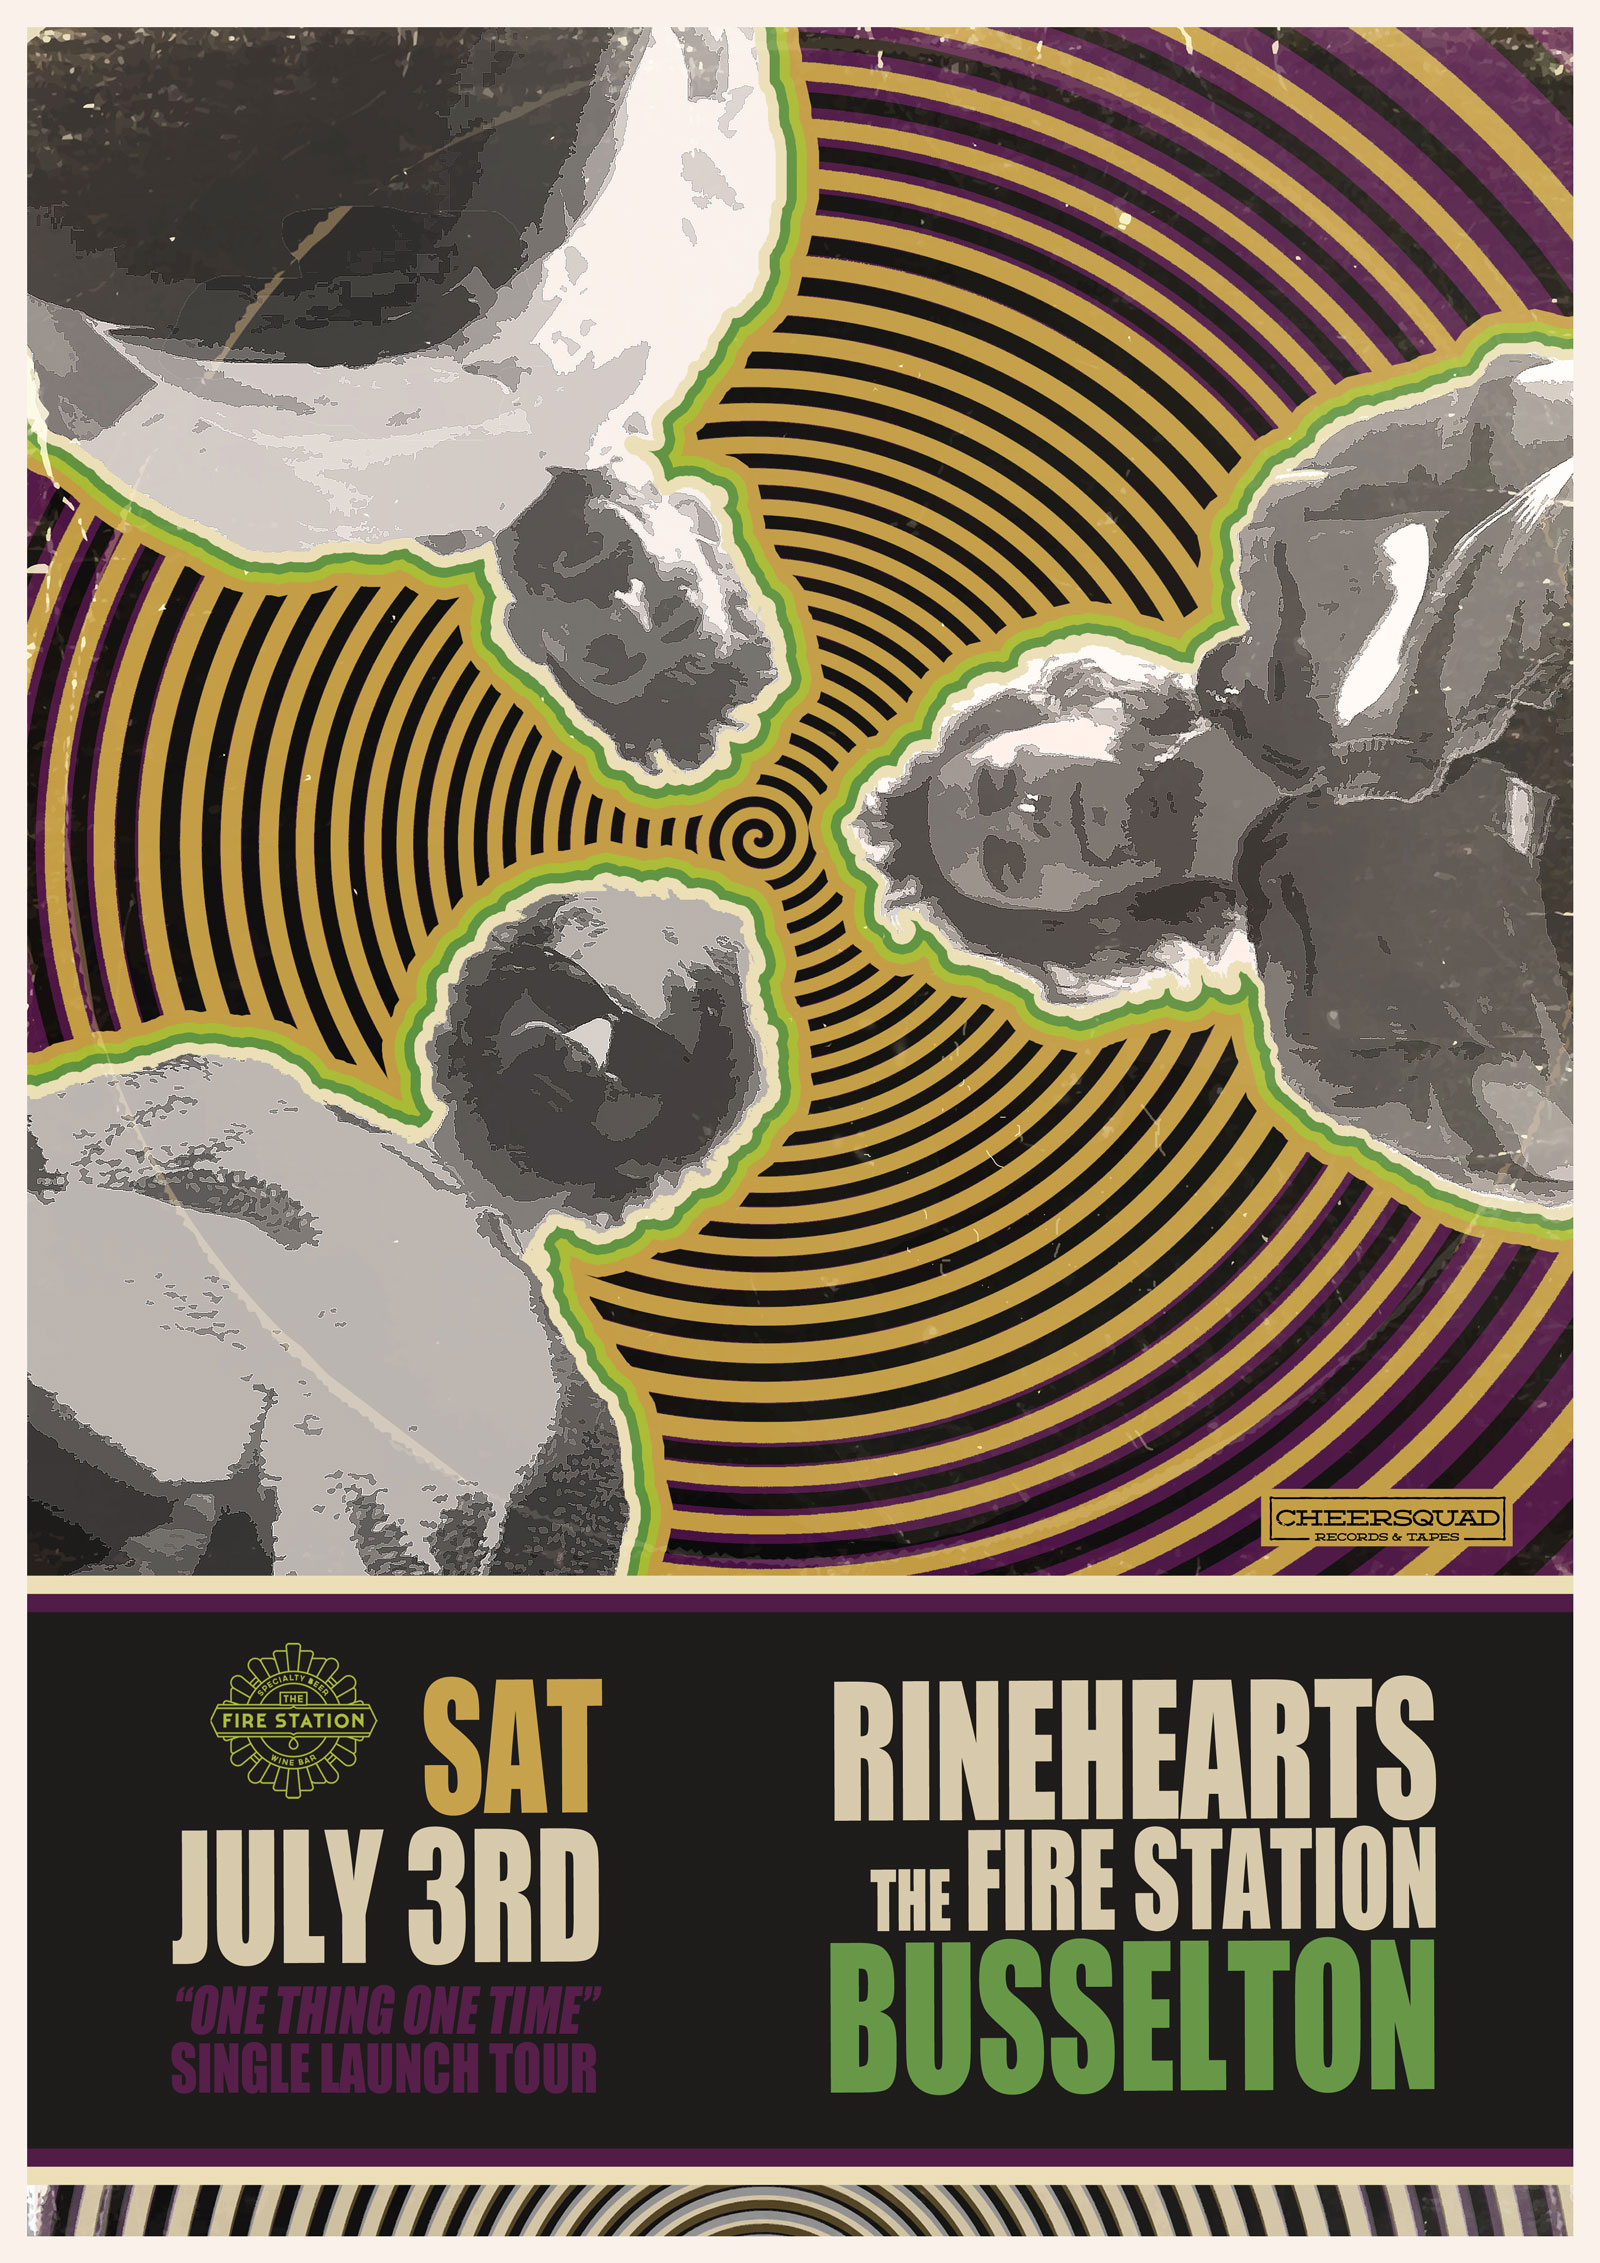 Rinehearts at The Fire Station (Busselton)